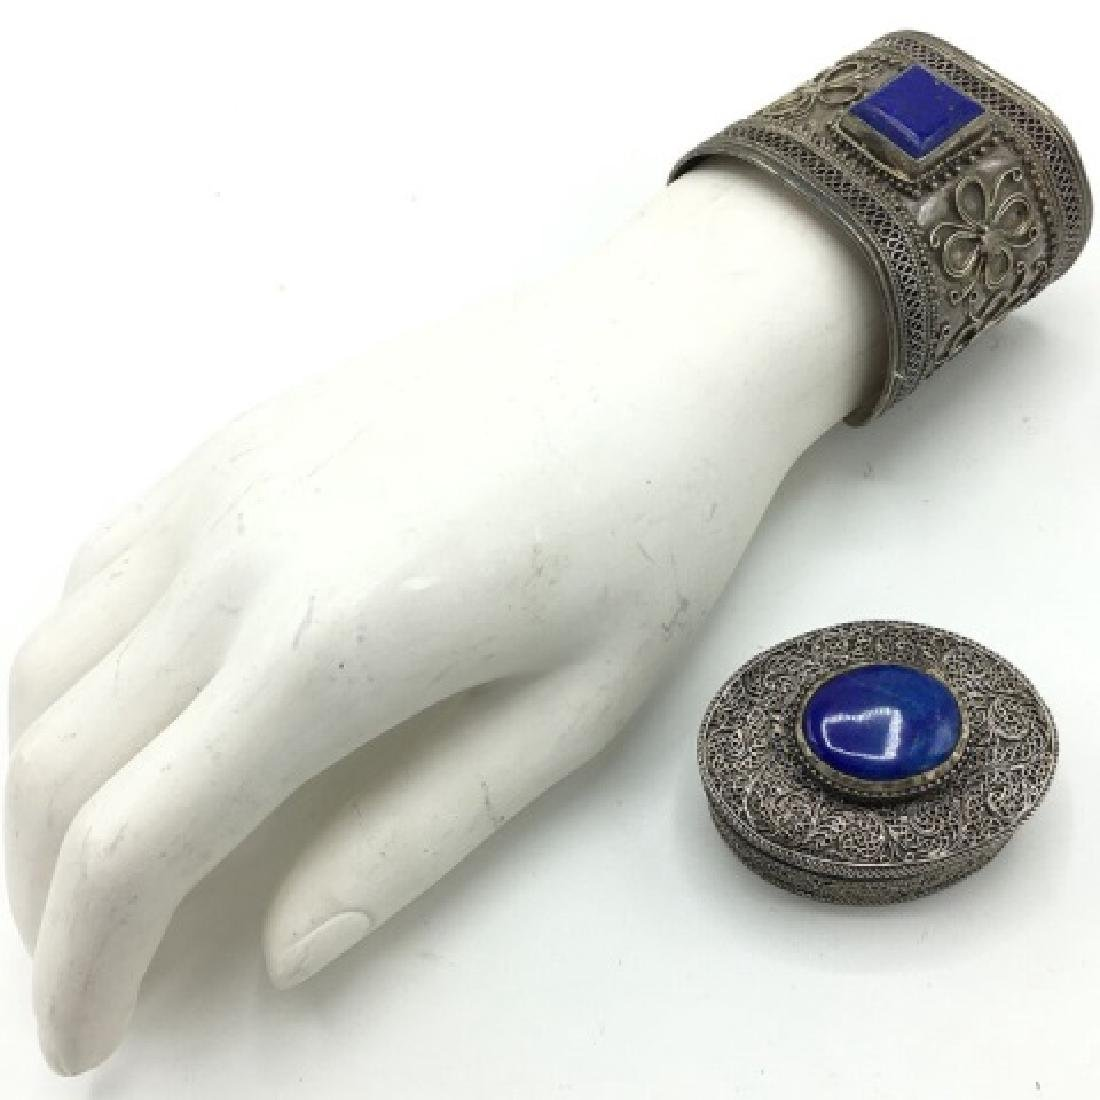 Vintage Silver Ethnic Cuff & Pill Box with Stones - 3